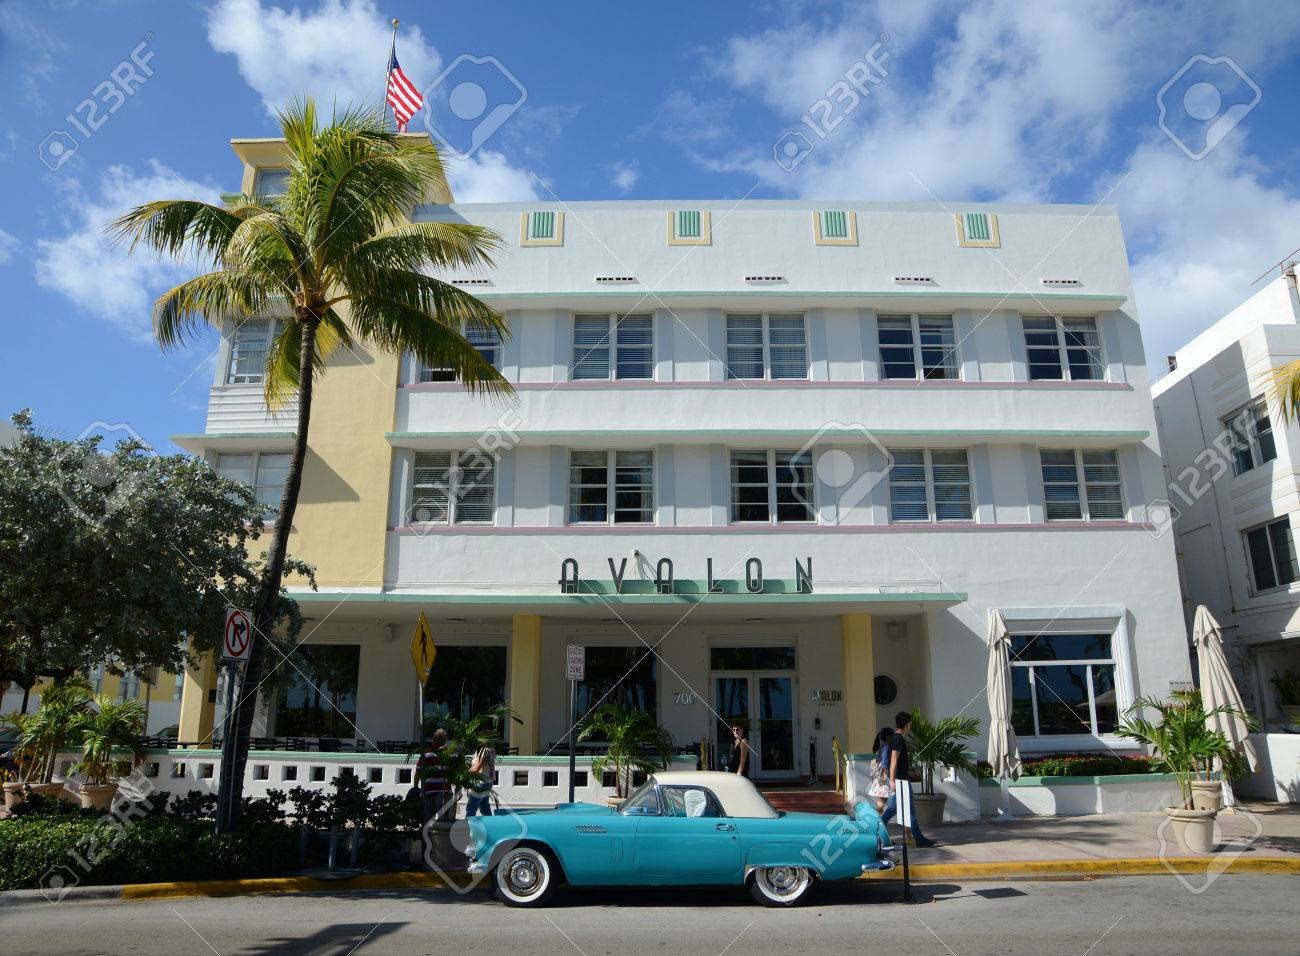 Art Deco Style Building Avalon And Antique Chevrolet Bel Air ...